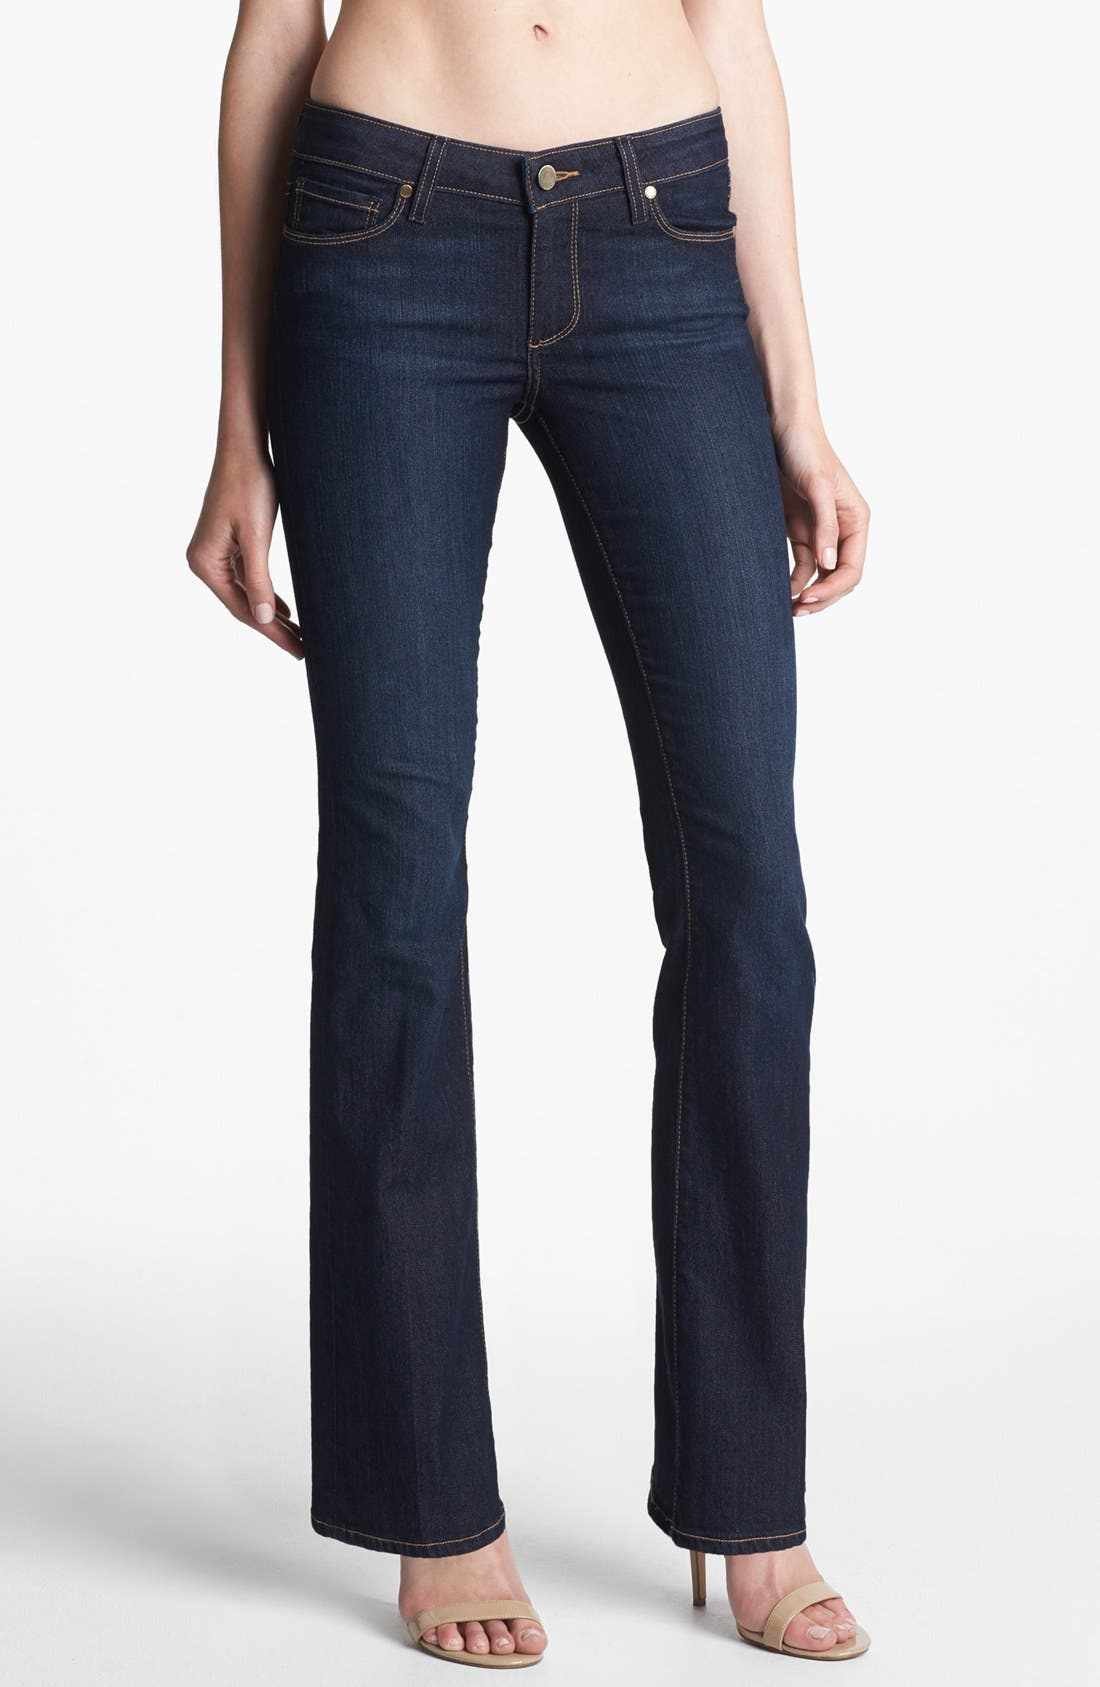 Alternate Image 1 Selected - Paige Denim 'Skyline' Bootcut Stretch Jeans (Carson) (Petite)